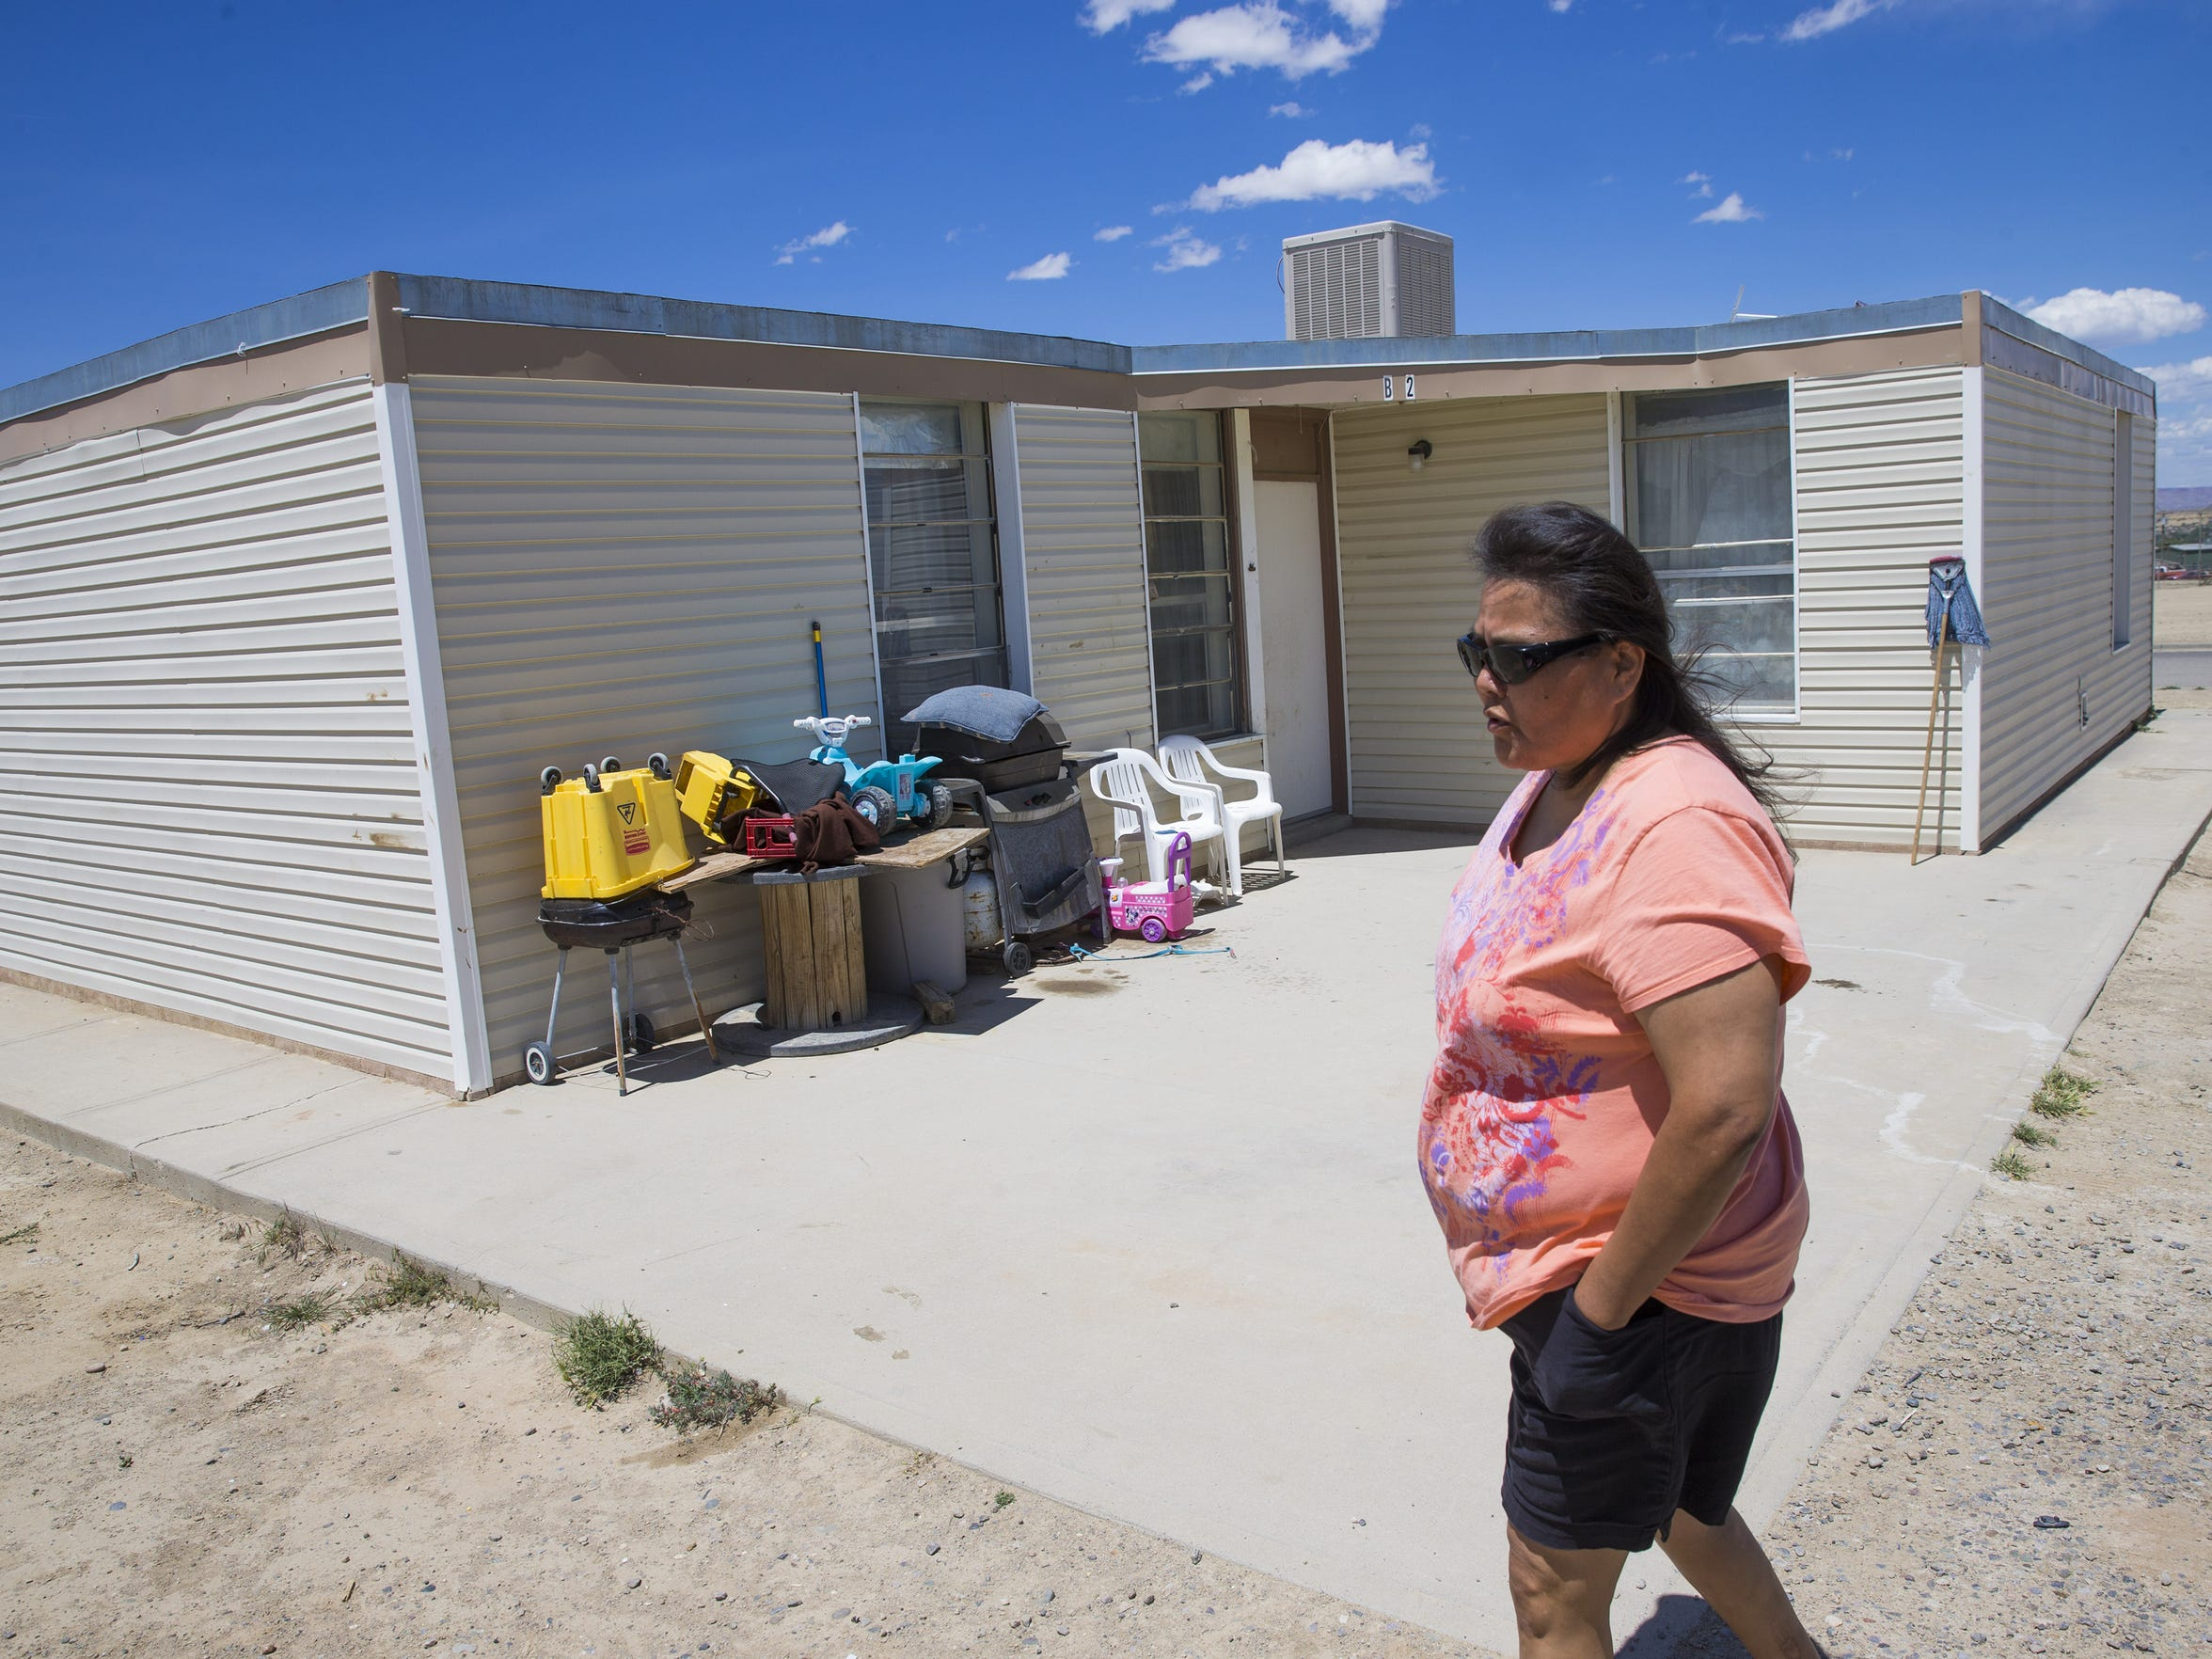 Carletta Begay's three-bedroom home in South Shiprock,